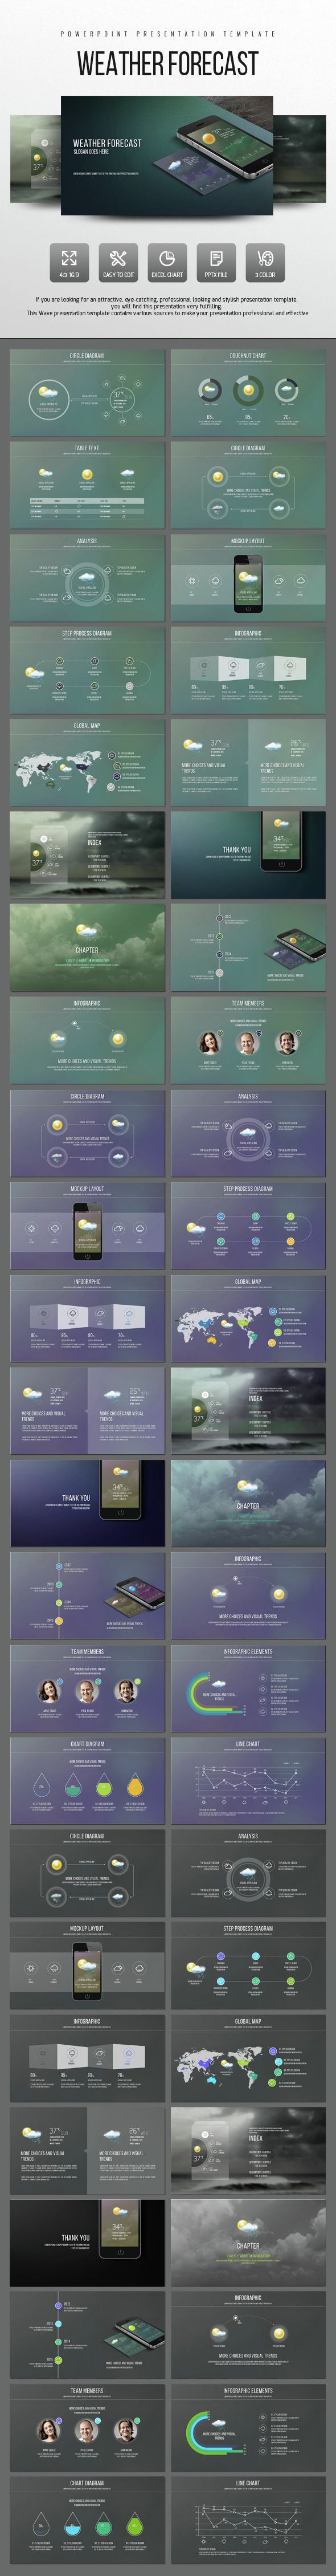 well designed powerpoint templates - best 25 weather forecast ideas on pinterest five day